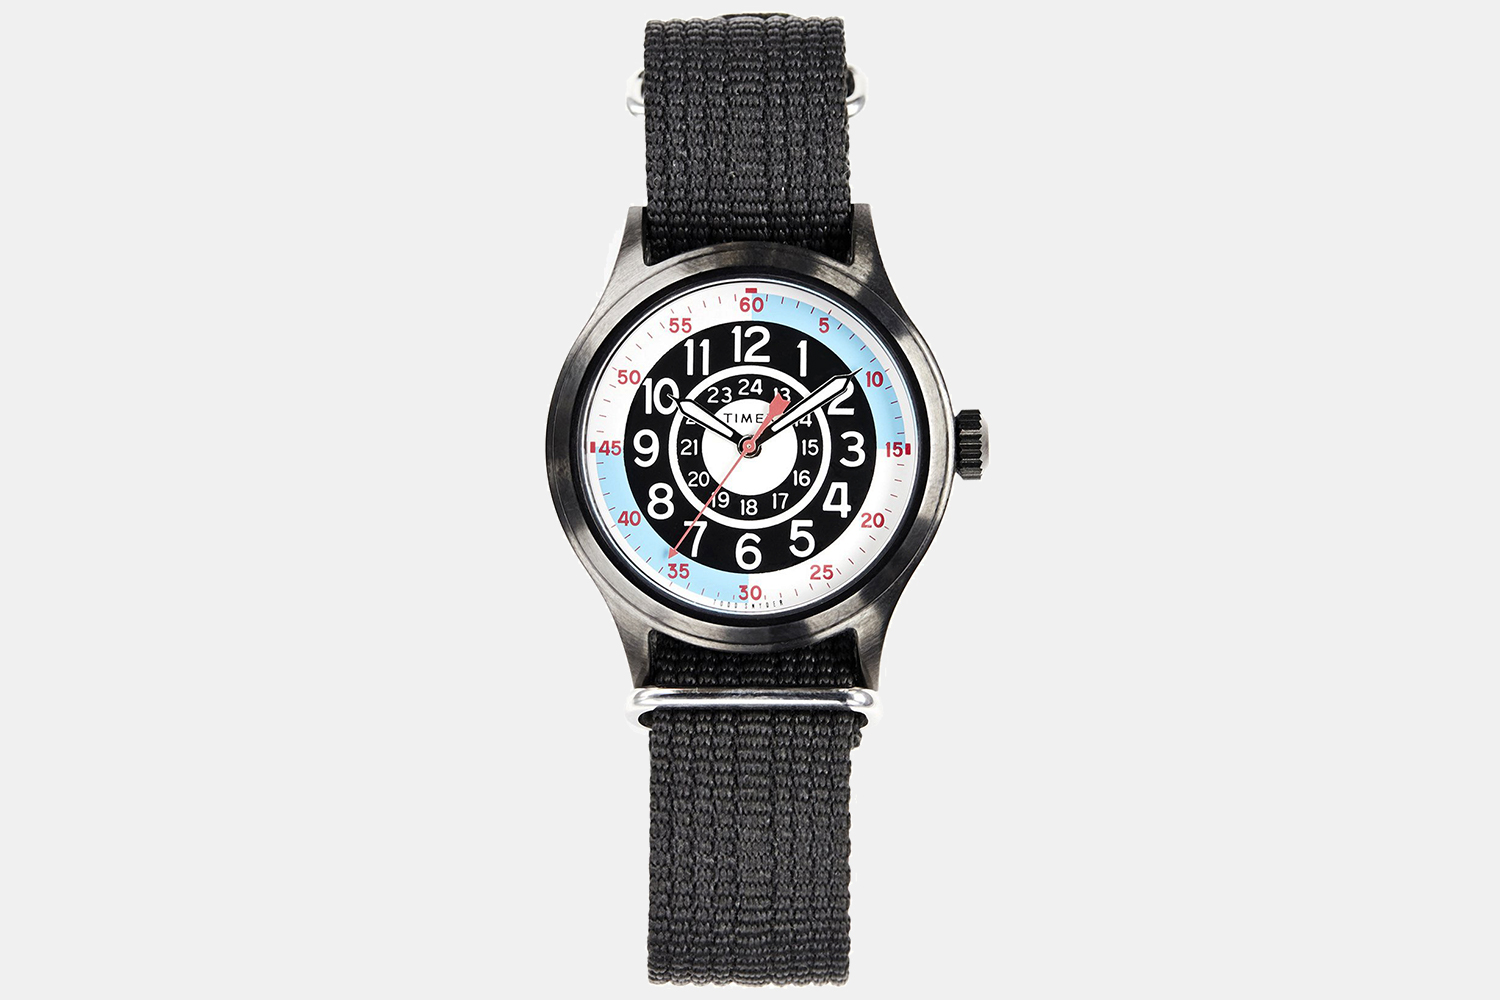 The Blackjack Watch from Timex and Todd Snyder